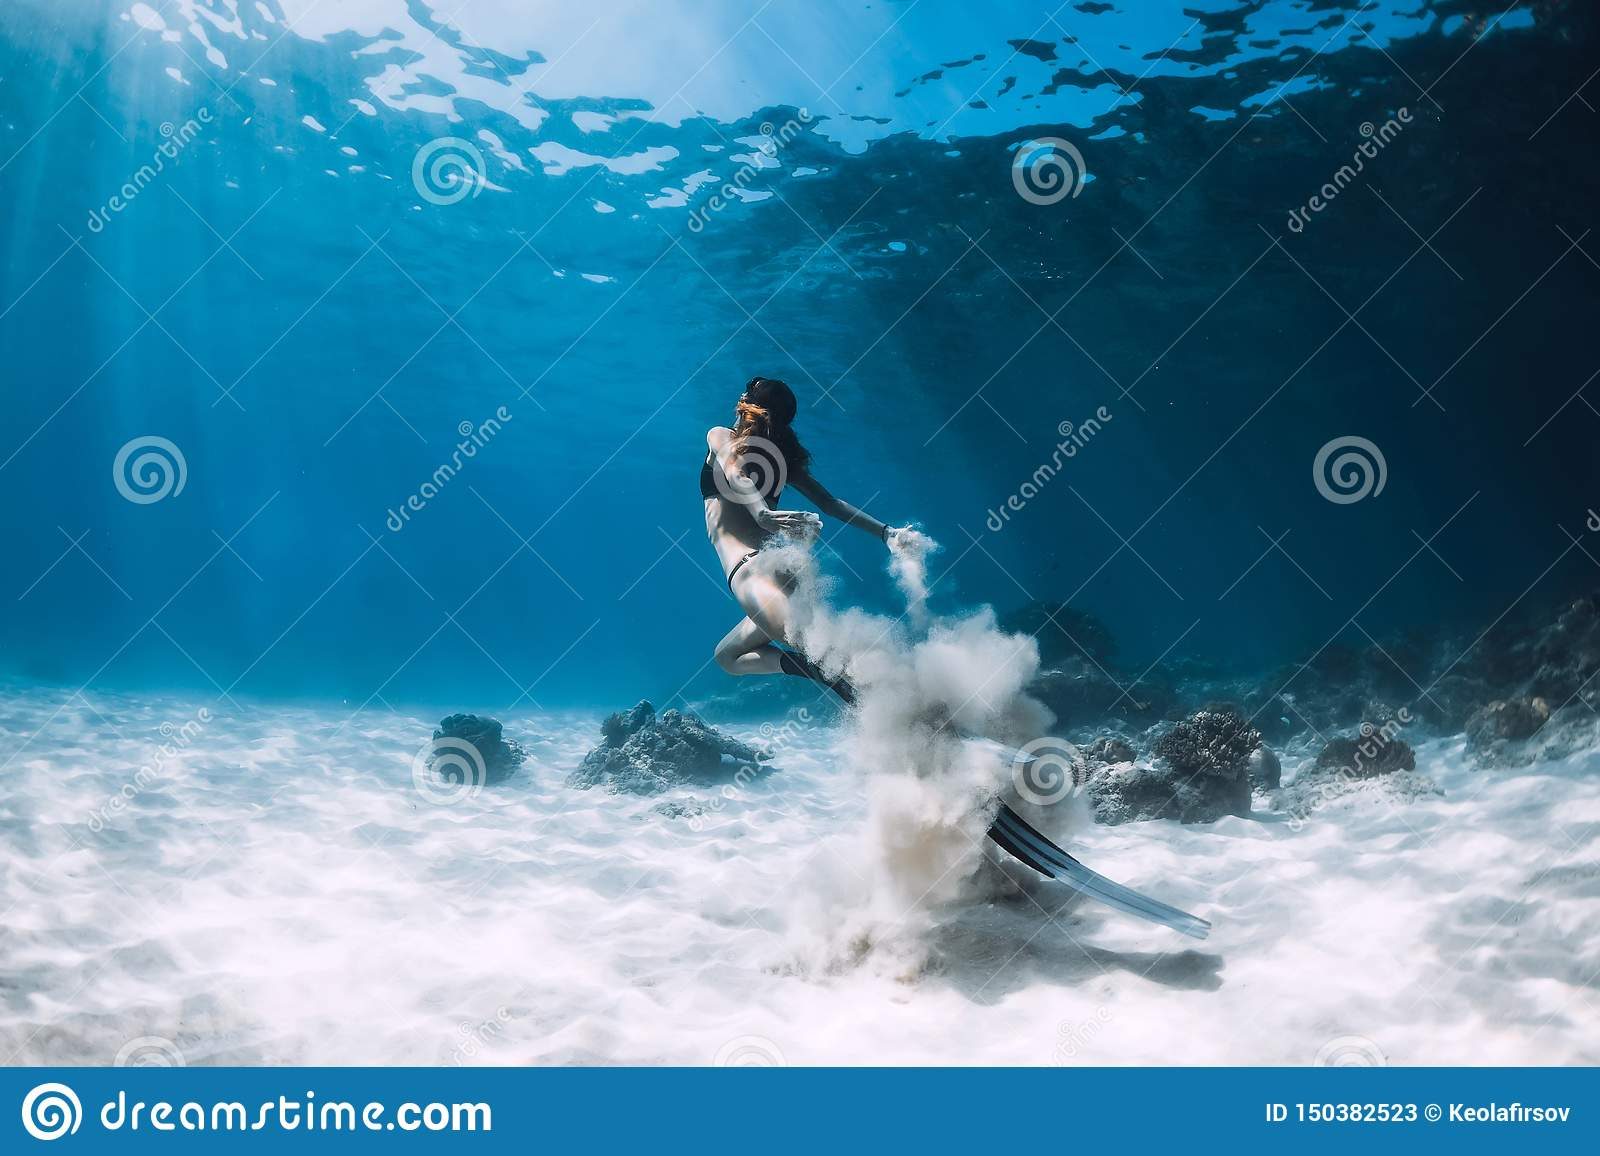 Woman freediver with white sand glides over sandy sea with fins. Freediving underwater